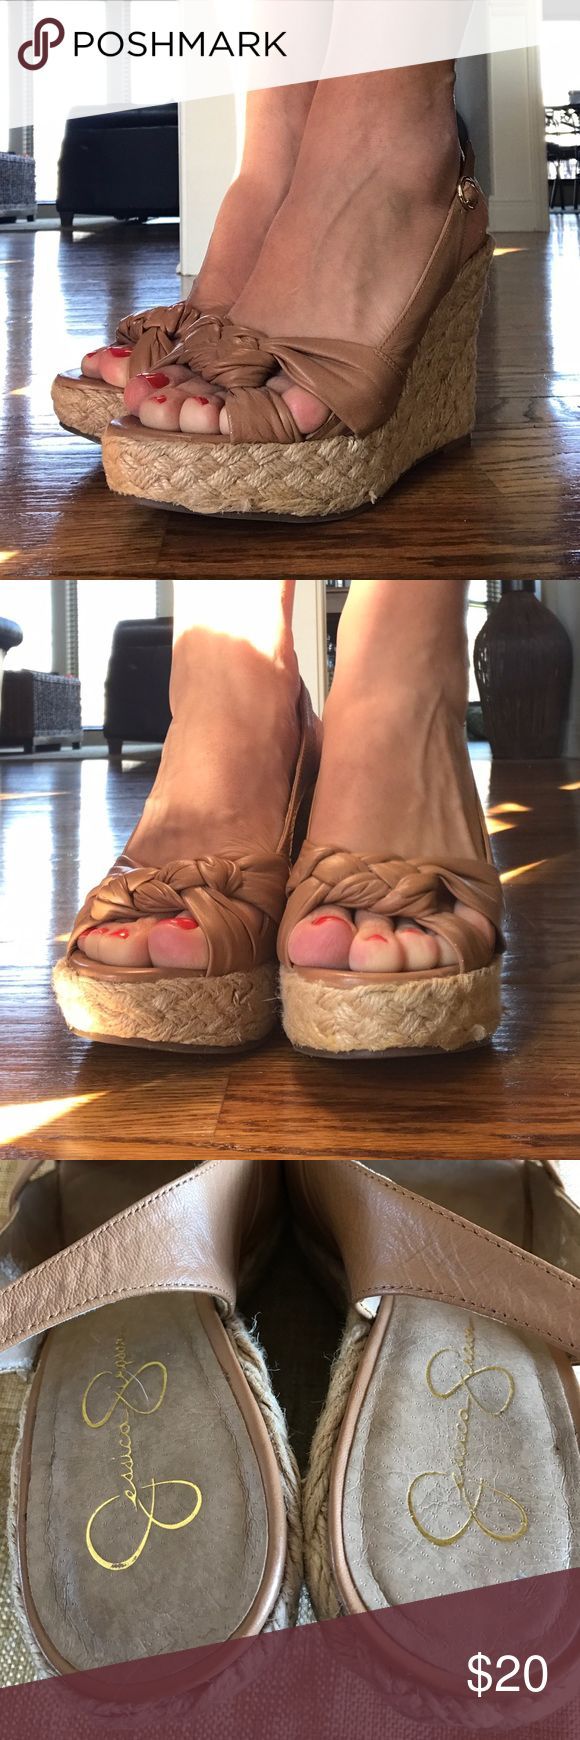 "Jessica Simpson Wedge Sandals. nude. SZ 7.5 EUC straw heeled wedge sandal. 4"" wedge. Worn a handful of times but, from driving, there is some discoloration on the bottom back souls (as pointed out in pic). Jessica Simpson Shoes Sandals"